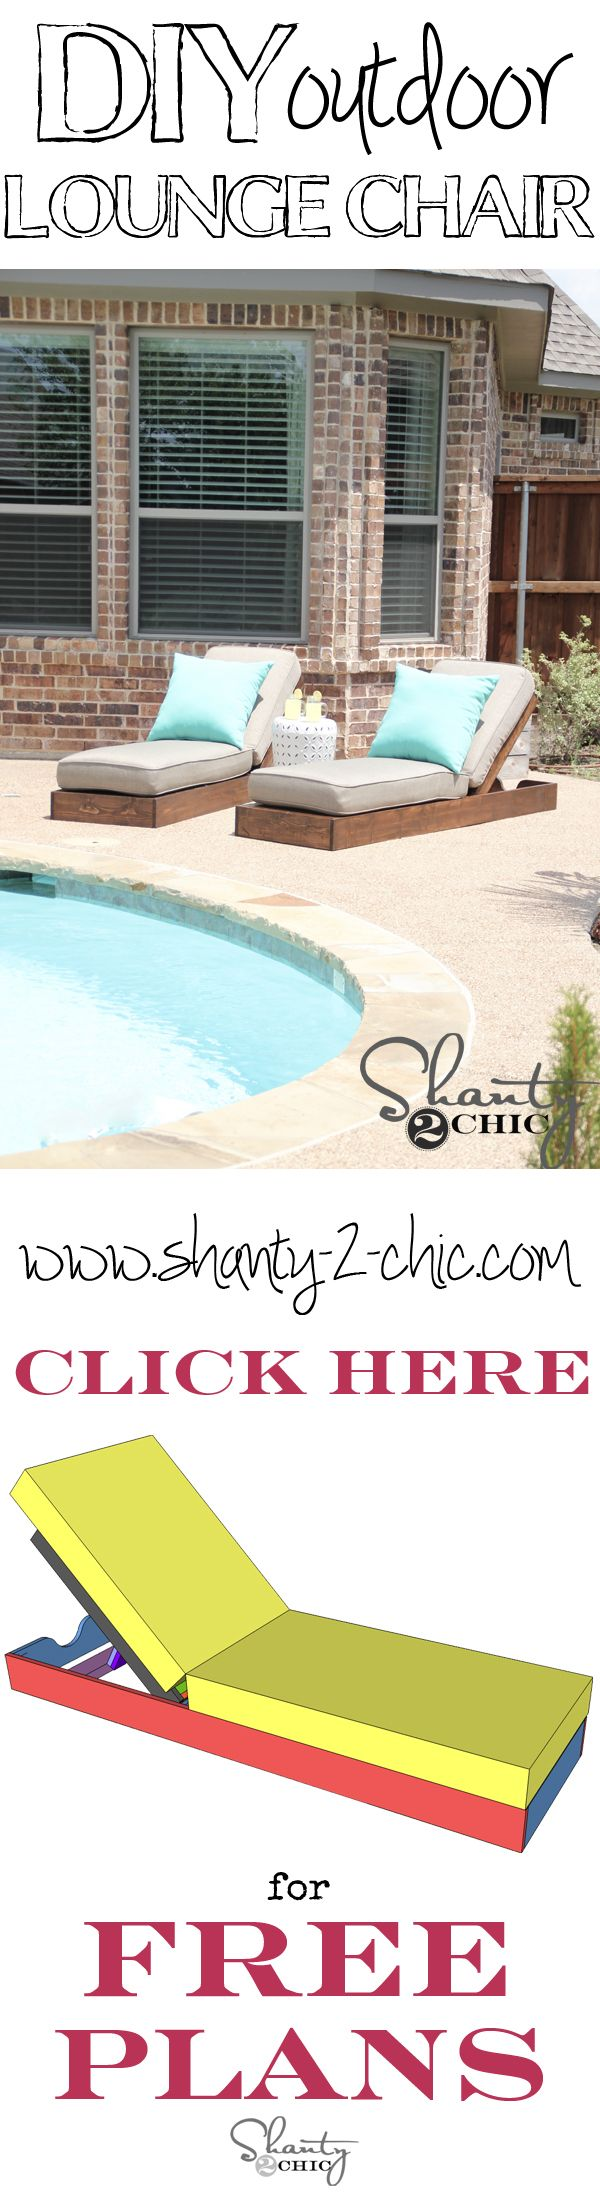 Build your own custom outdoor lounge chairs with free plans from shanty-2-chic.com